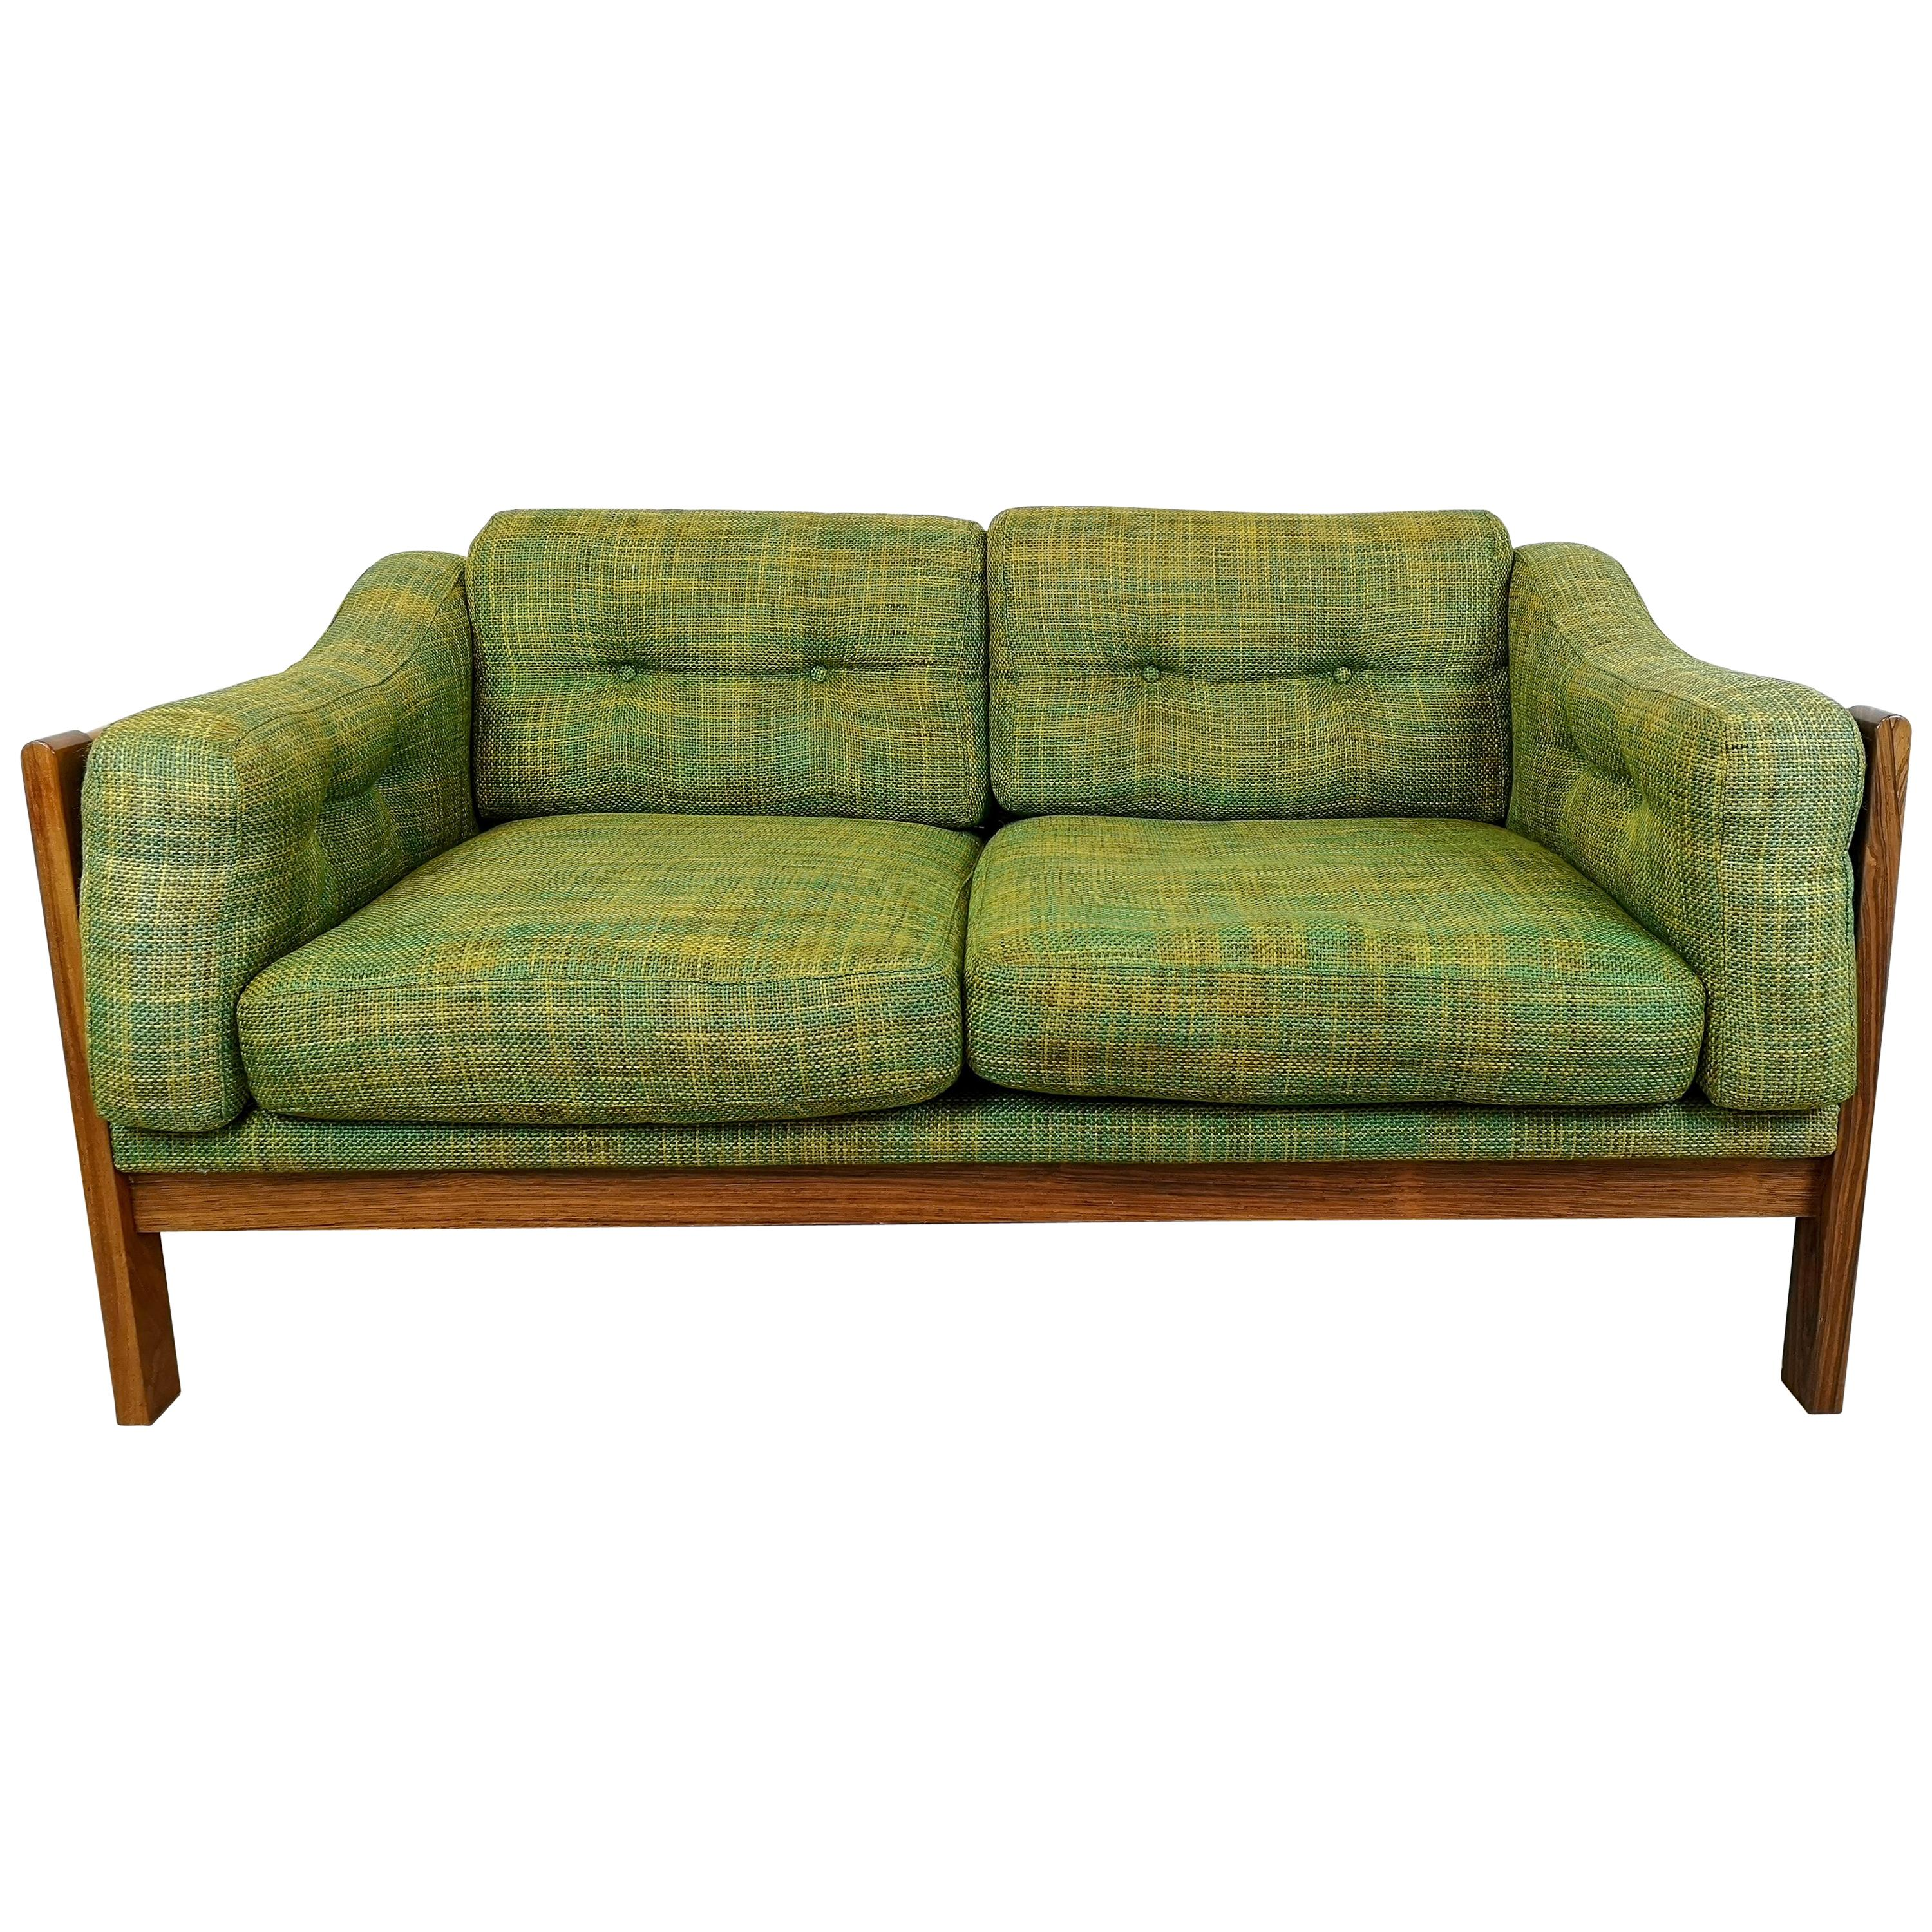 """Midcentury Rosewood and Green Cushions Sofa """"Monte Carlo"""", Sweden, 1960s"""